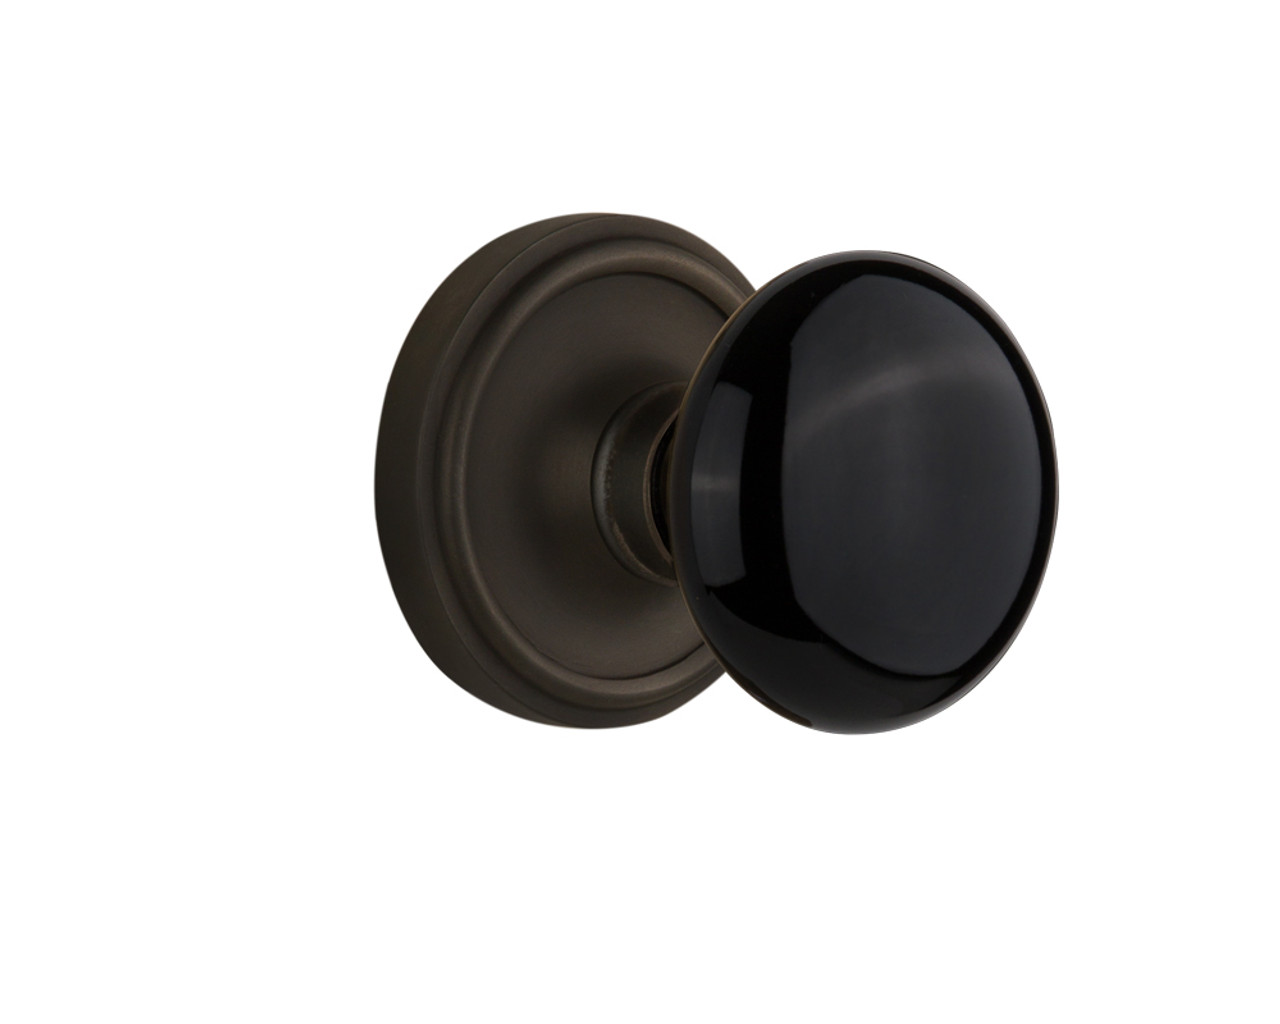 Nostalgic Warehouse Classic Plate Interior Mortise Black Porcelain Door Knob in Oil-Rubbed Bronze (NW-710387)